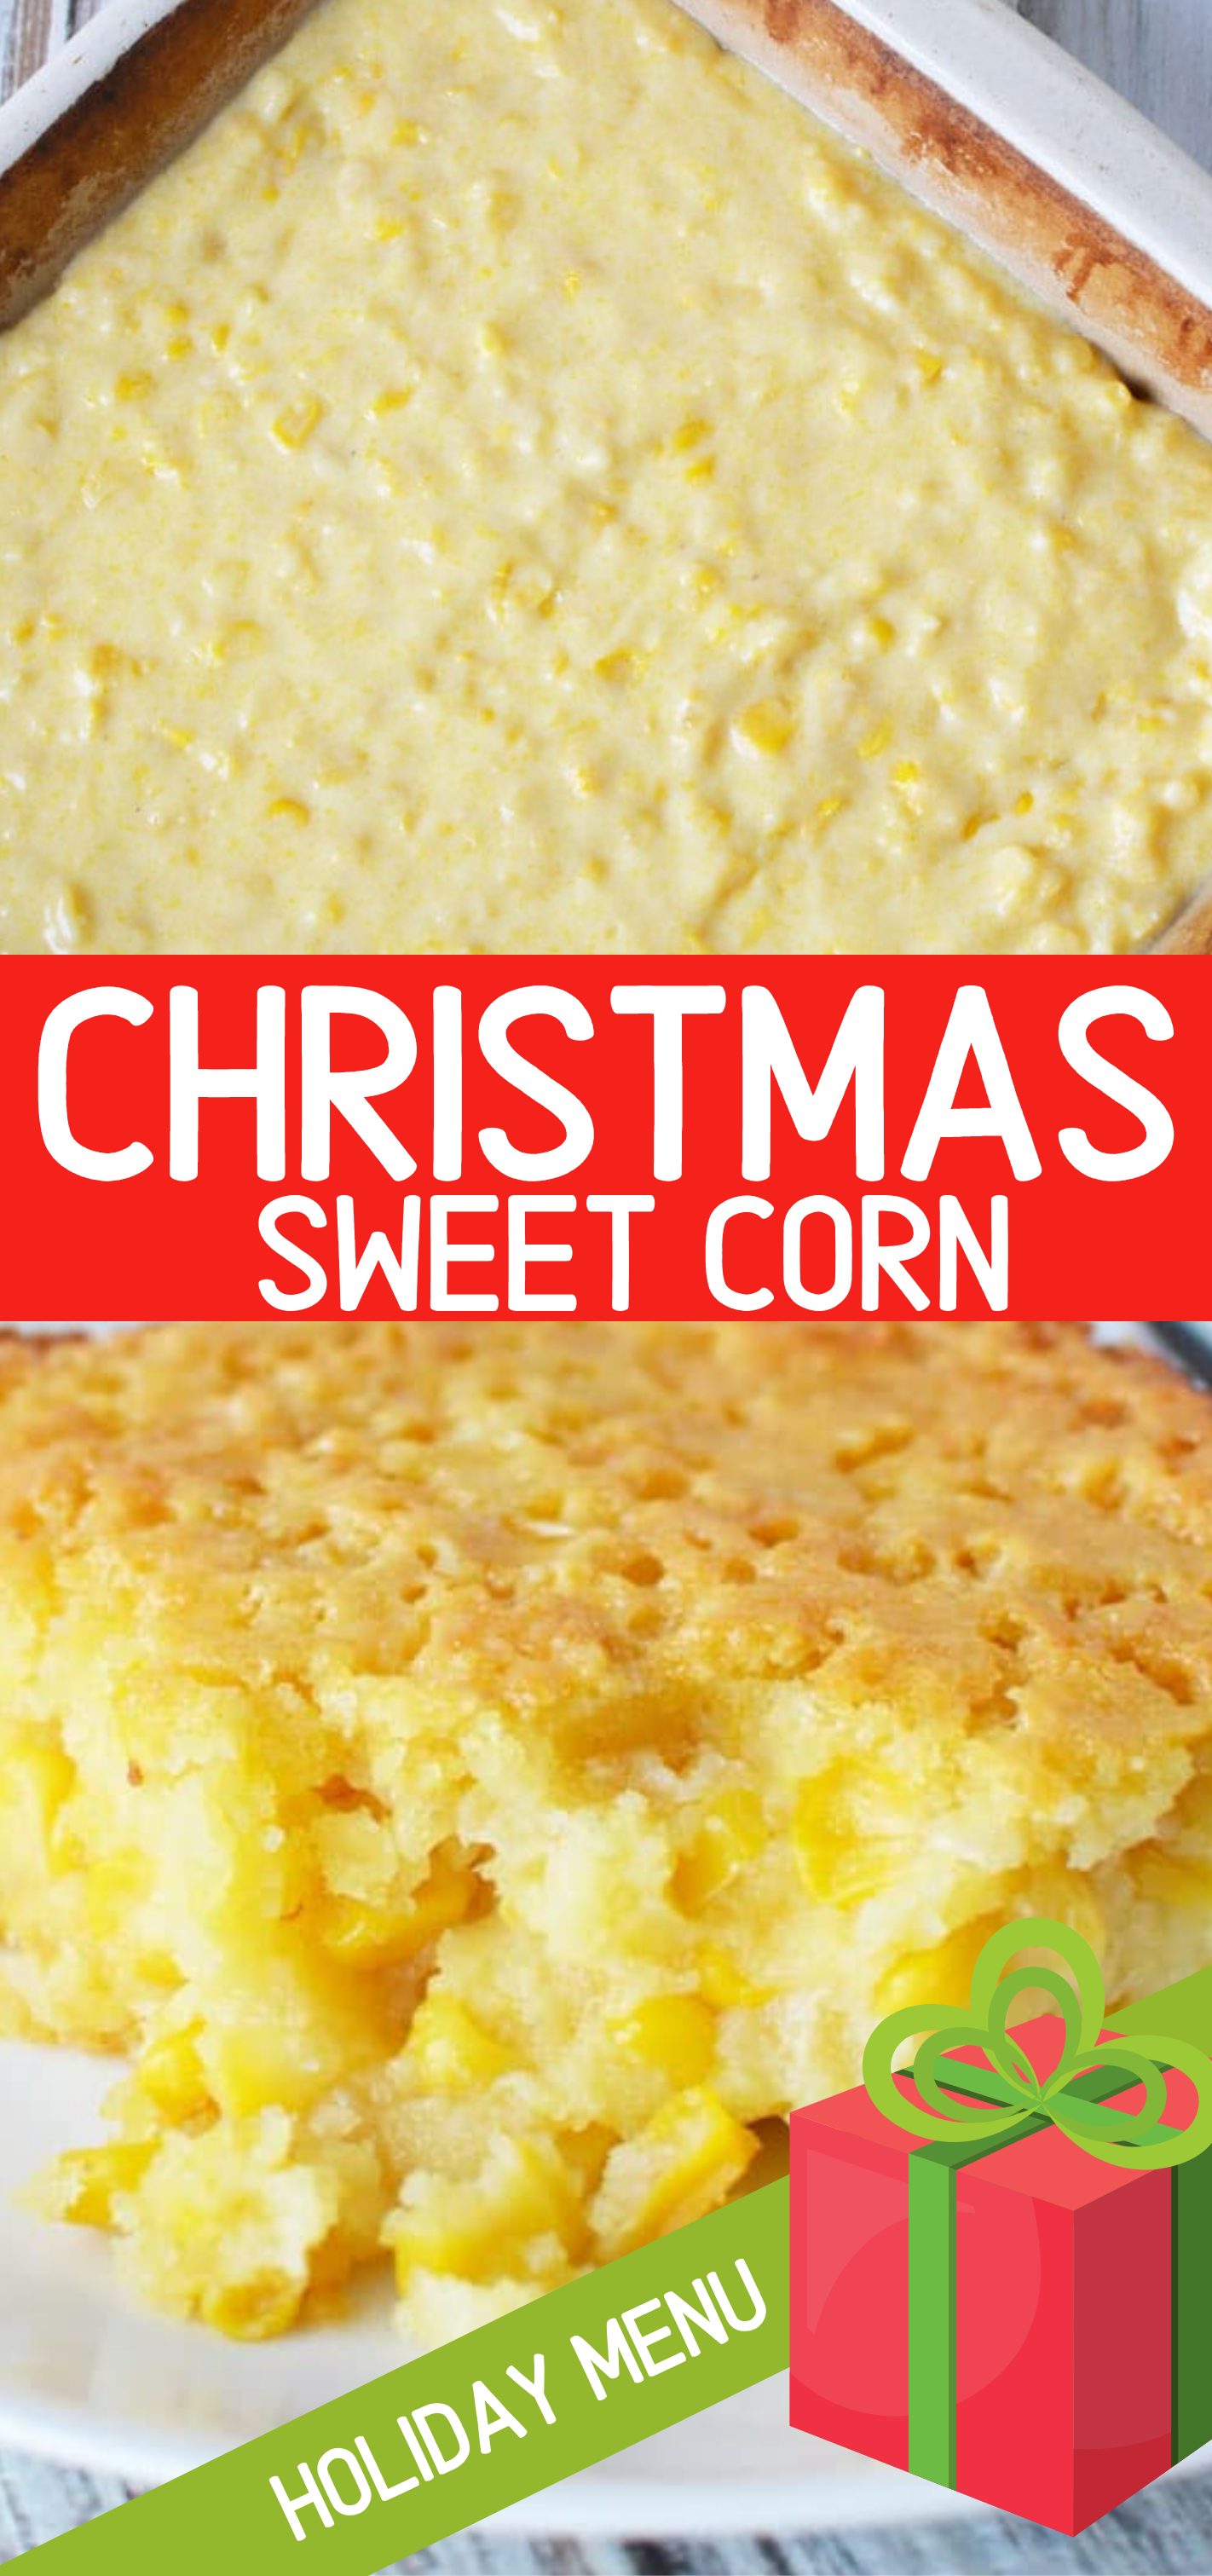 Sweet Corn Casserole Butter and cinnamon sugar wrapped up in Pillsbury crescent roll dough, twisted, and baked to crispy perfection! Every time we make these quick and easy Cinnamon Twists, they disappear in minutes!! #sweetcars